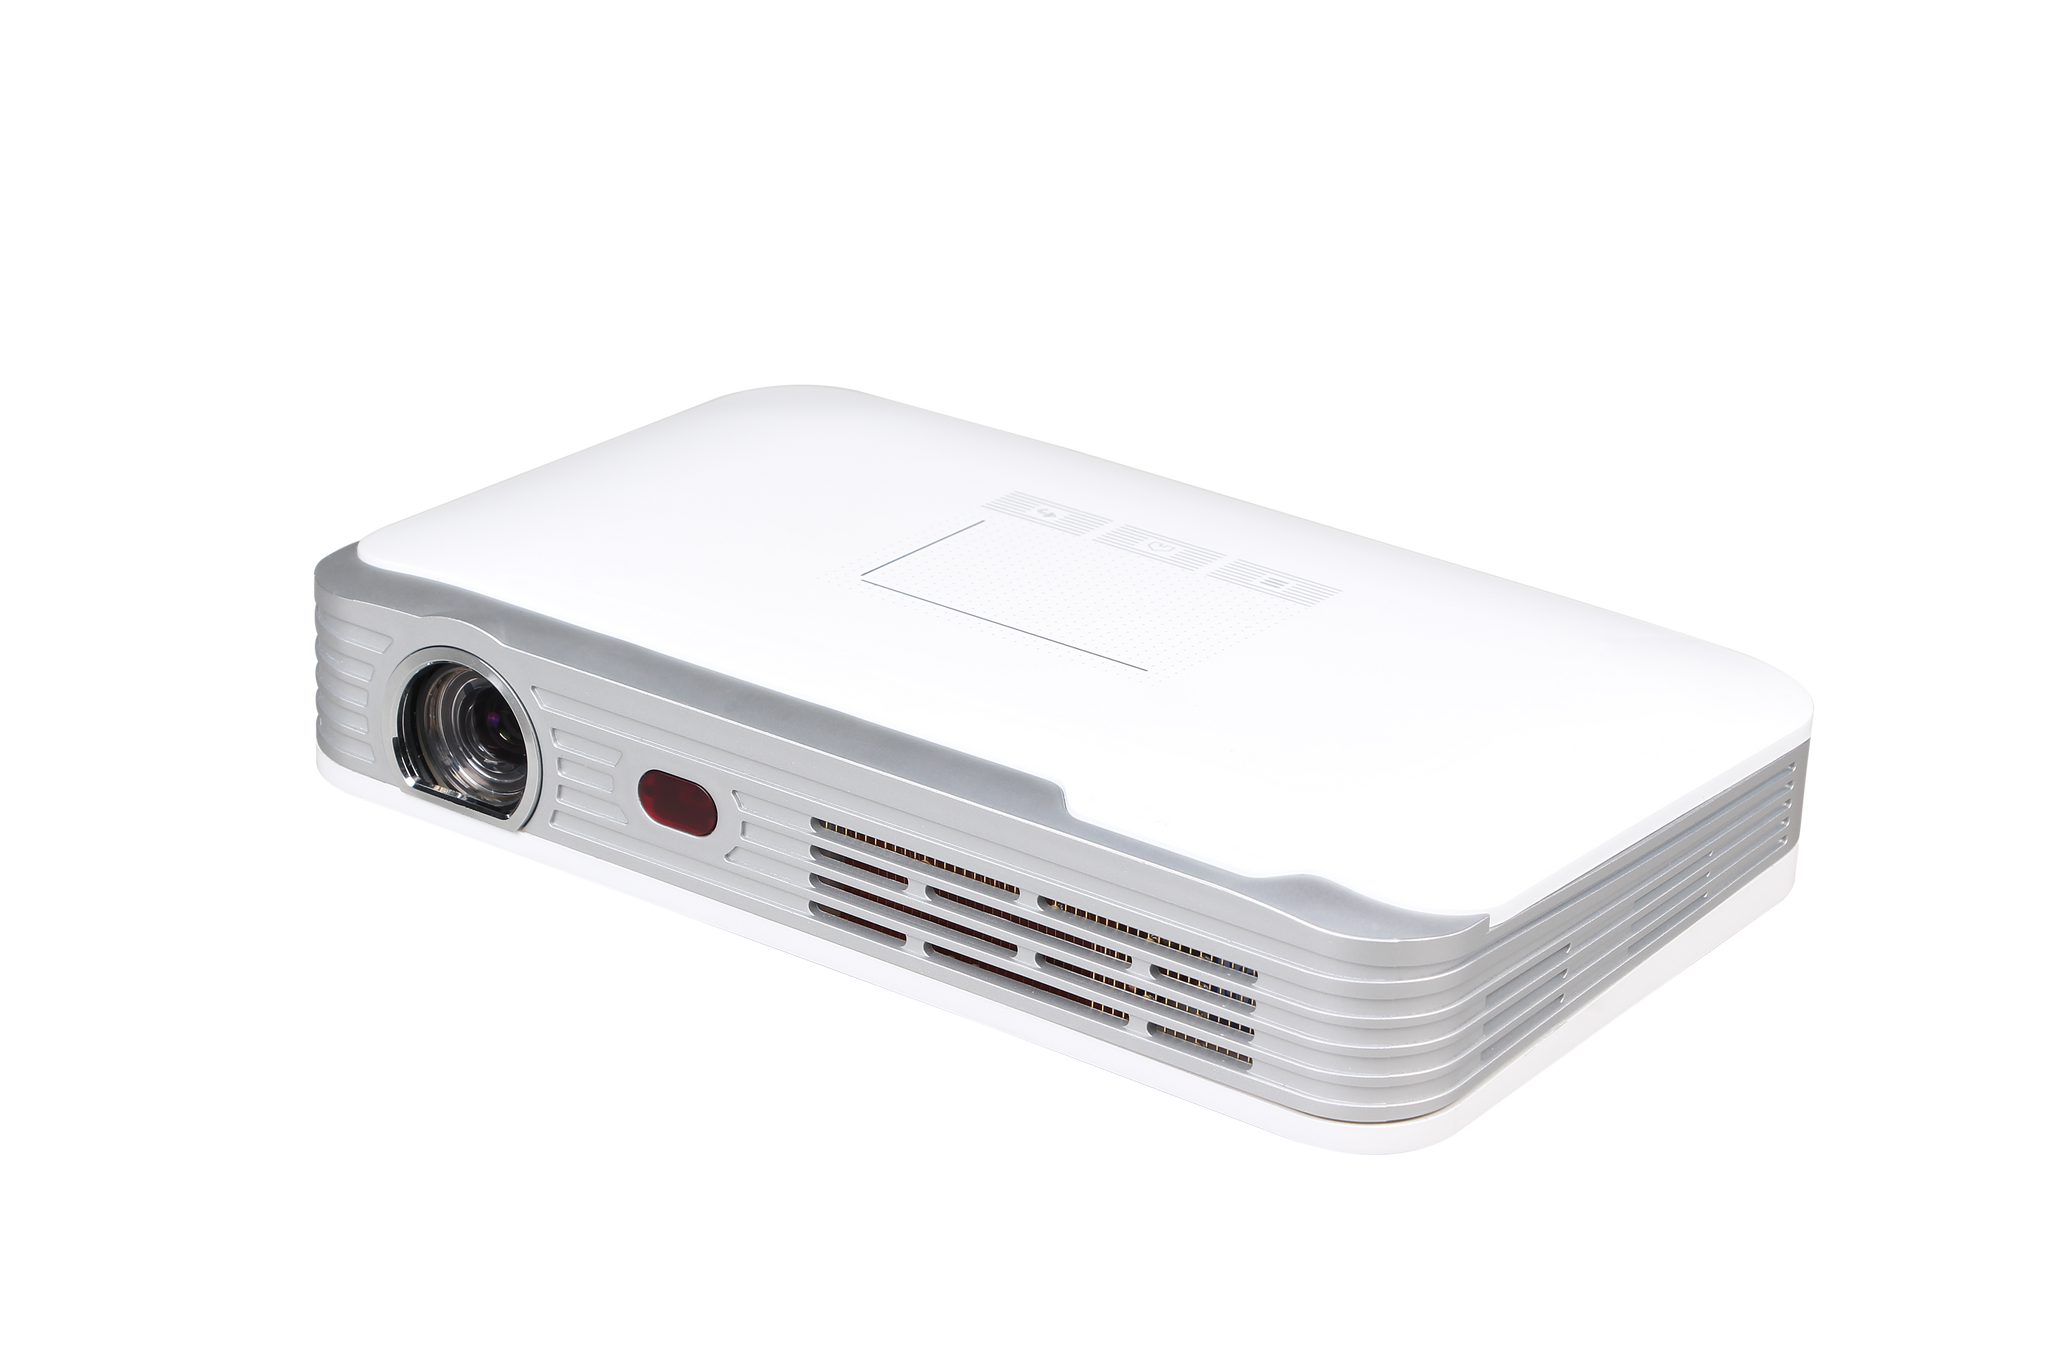 Pico Genie M550 Plus 2.0 LED Portable Projector